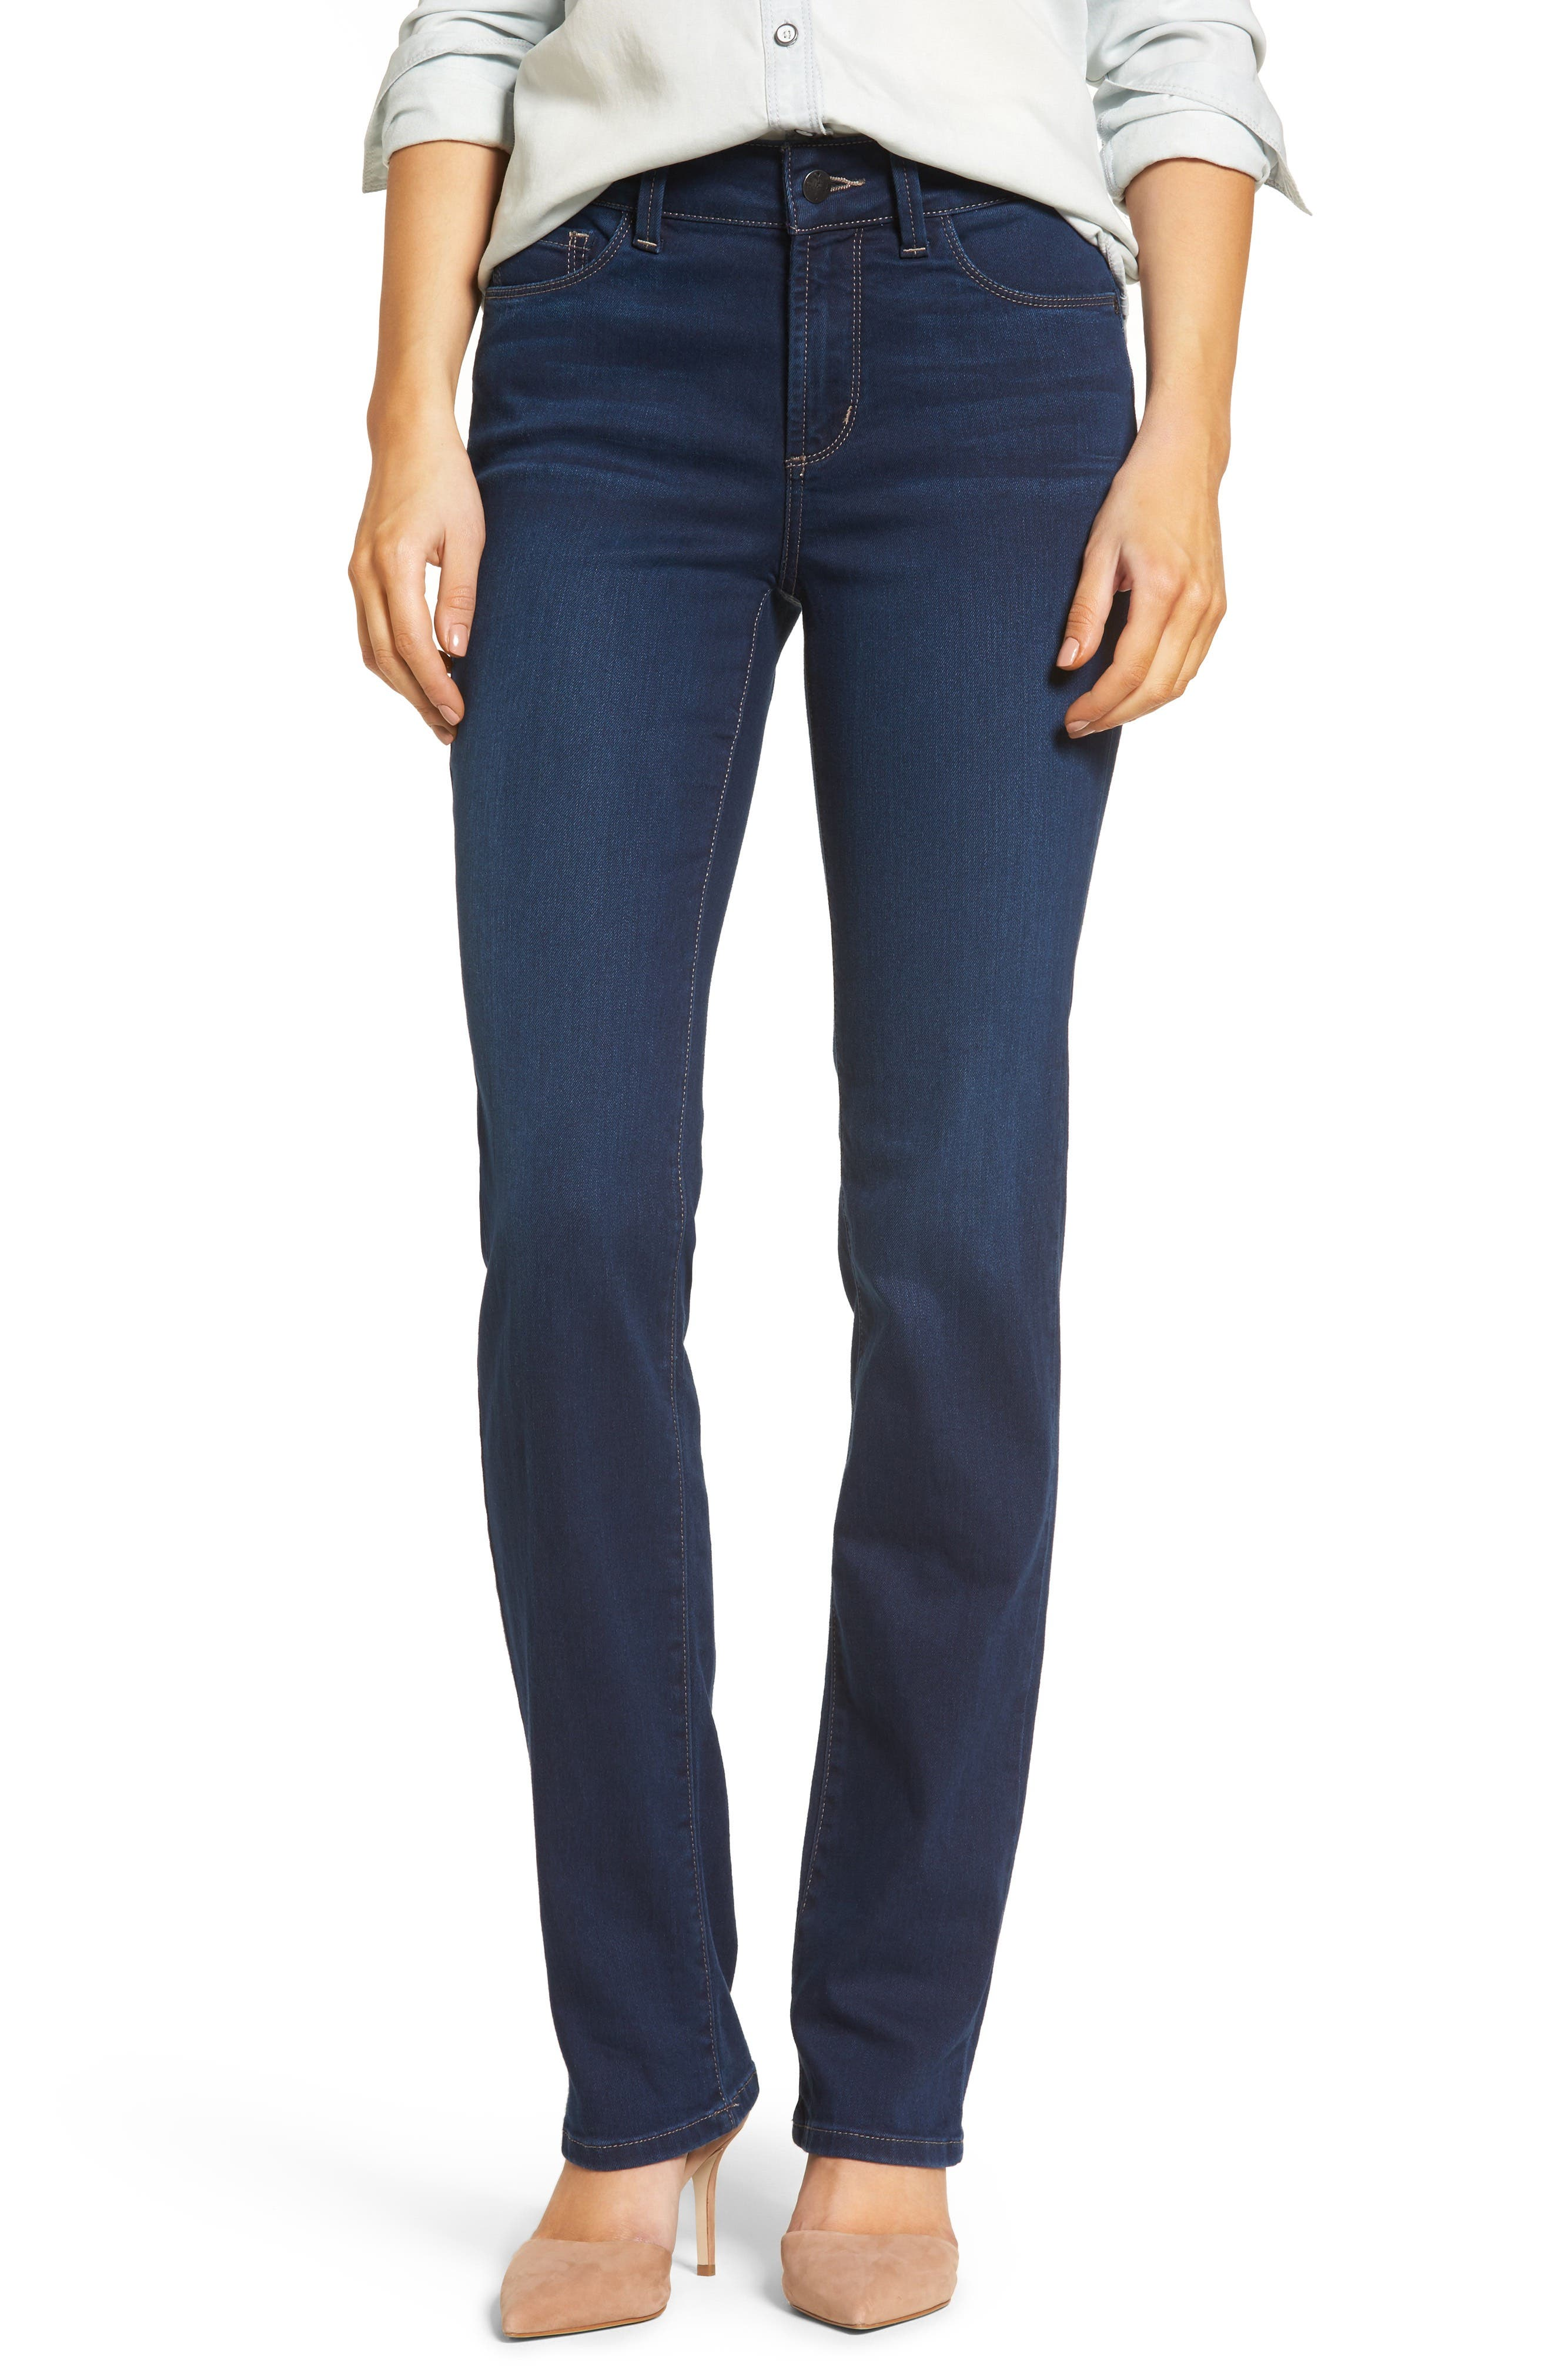 Marilyn Stretch Straight Leg Jeans,                         Main,                         color, 402